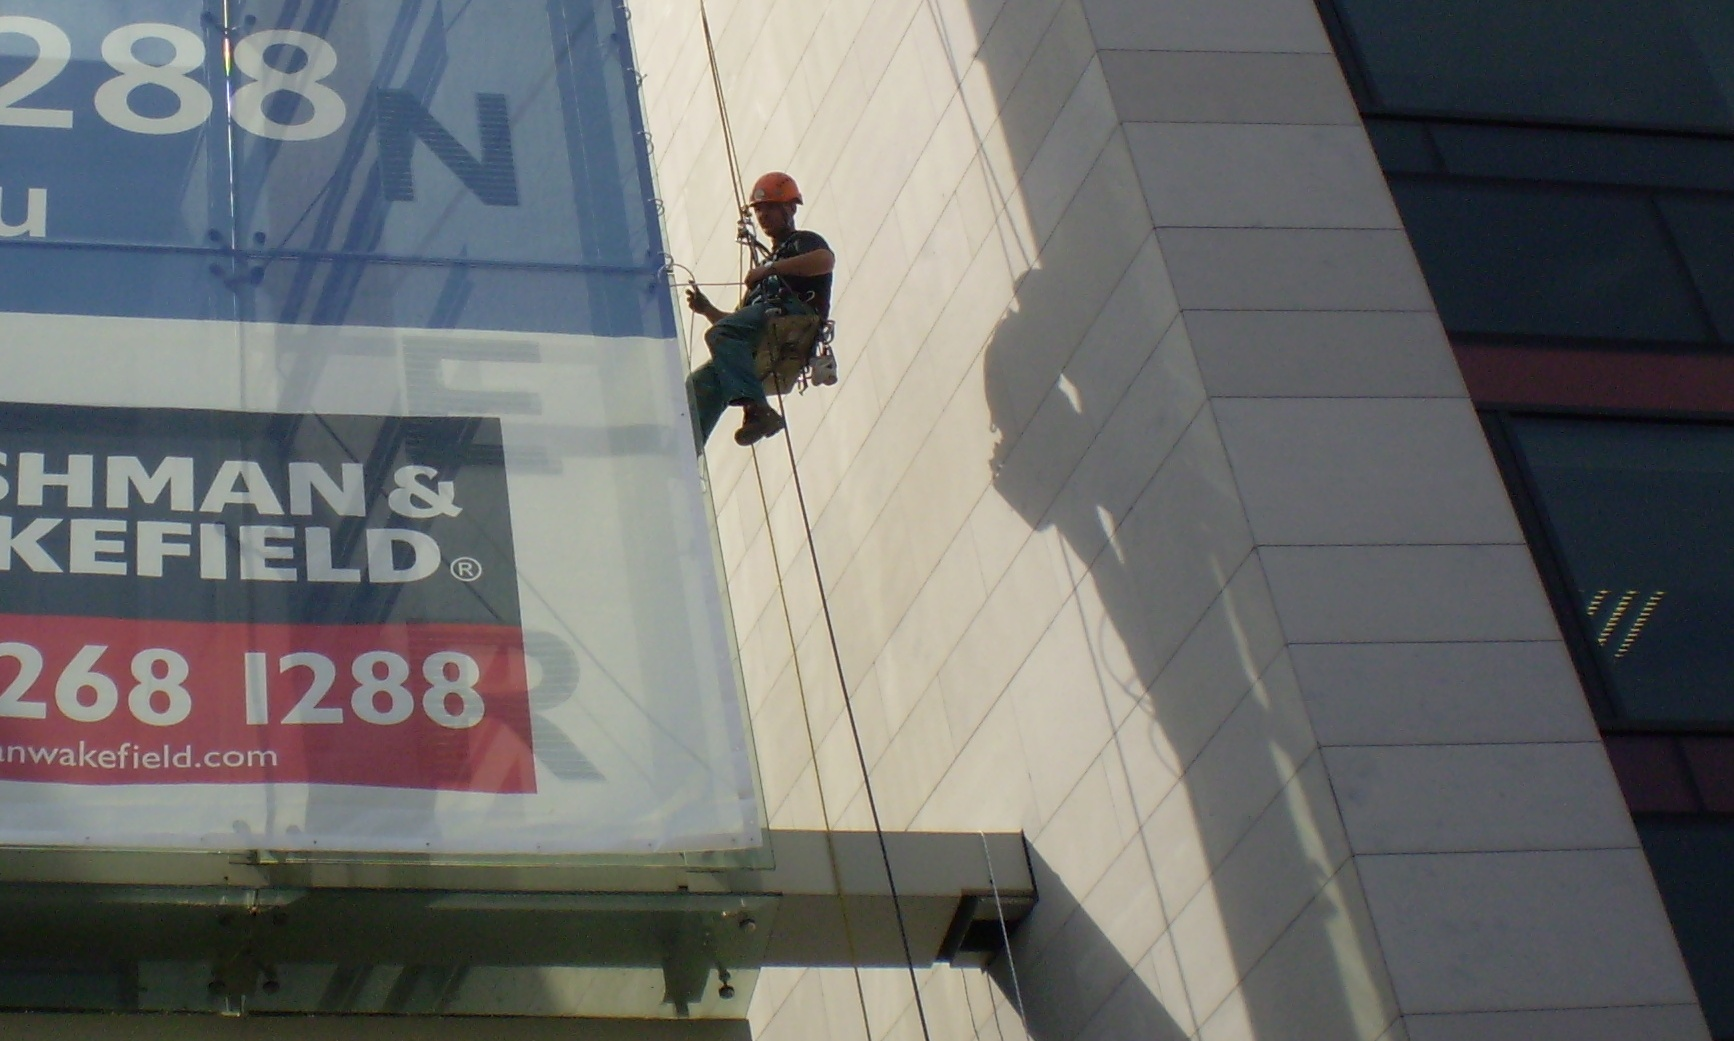 vinyl banner installation rope access